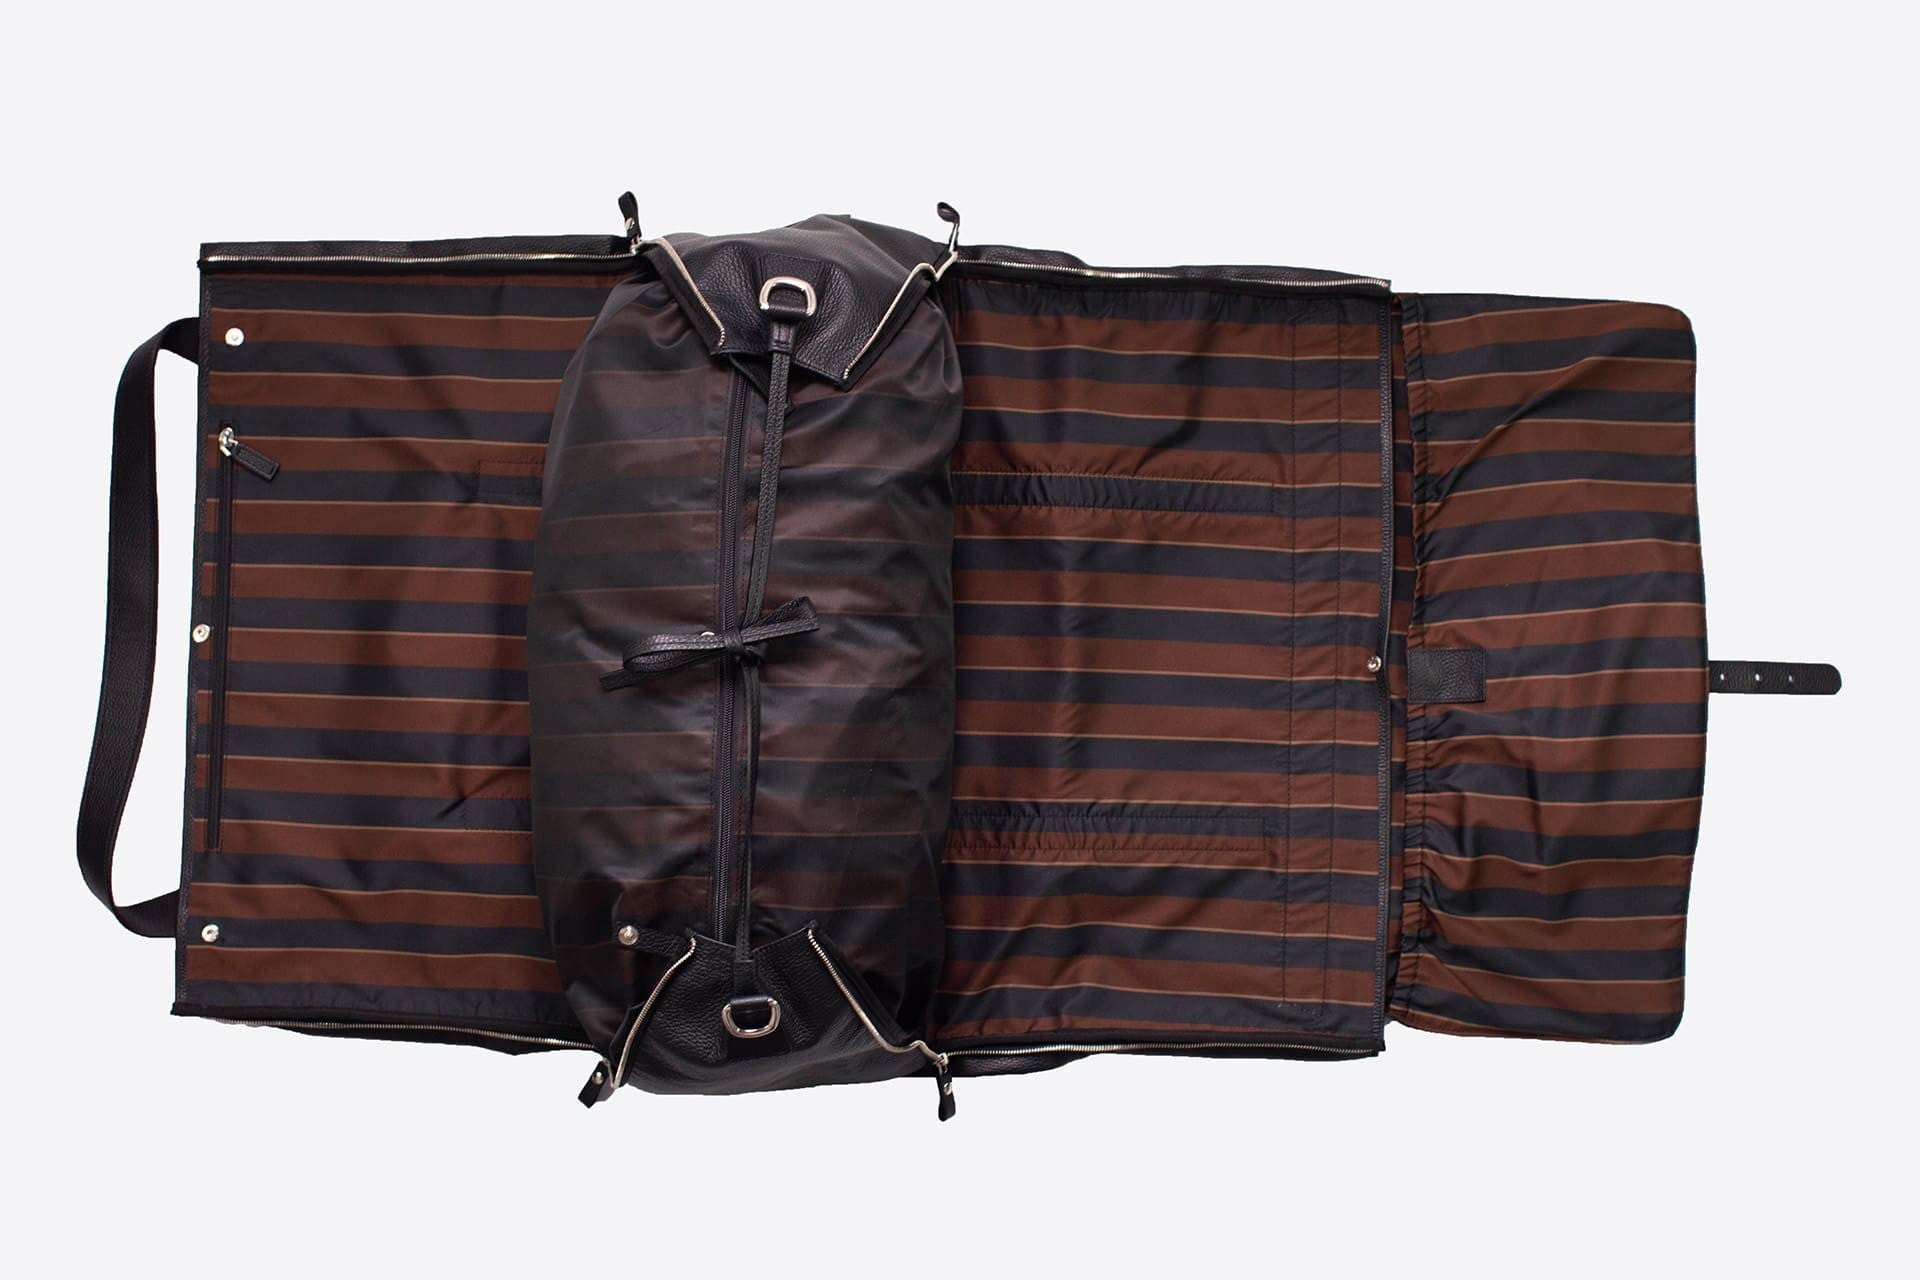 Best Garment Duffle Bag - Black Leather & Regimental